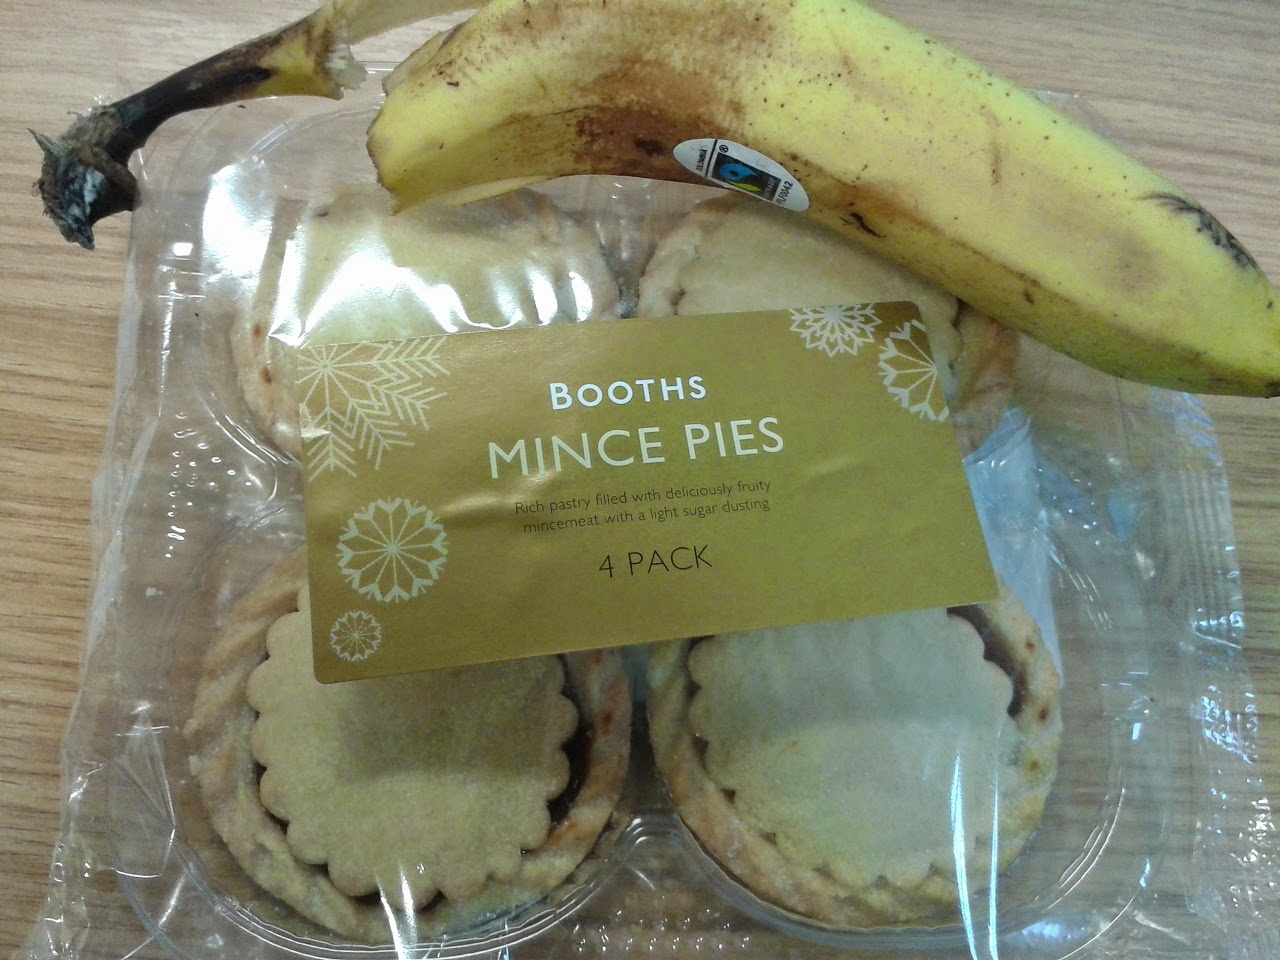 Booths Mince Pie Review